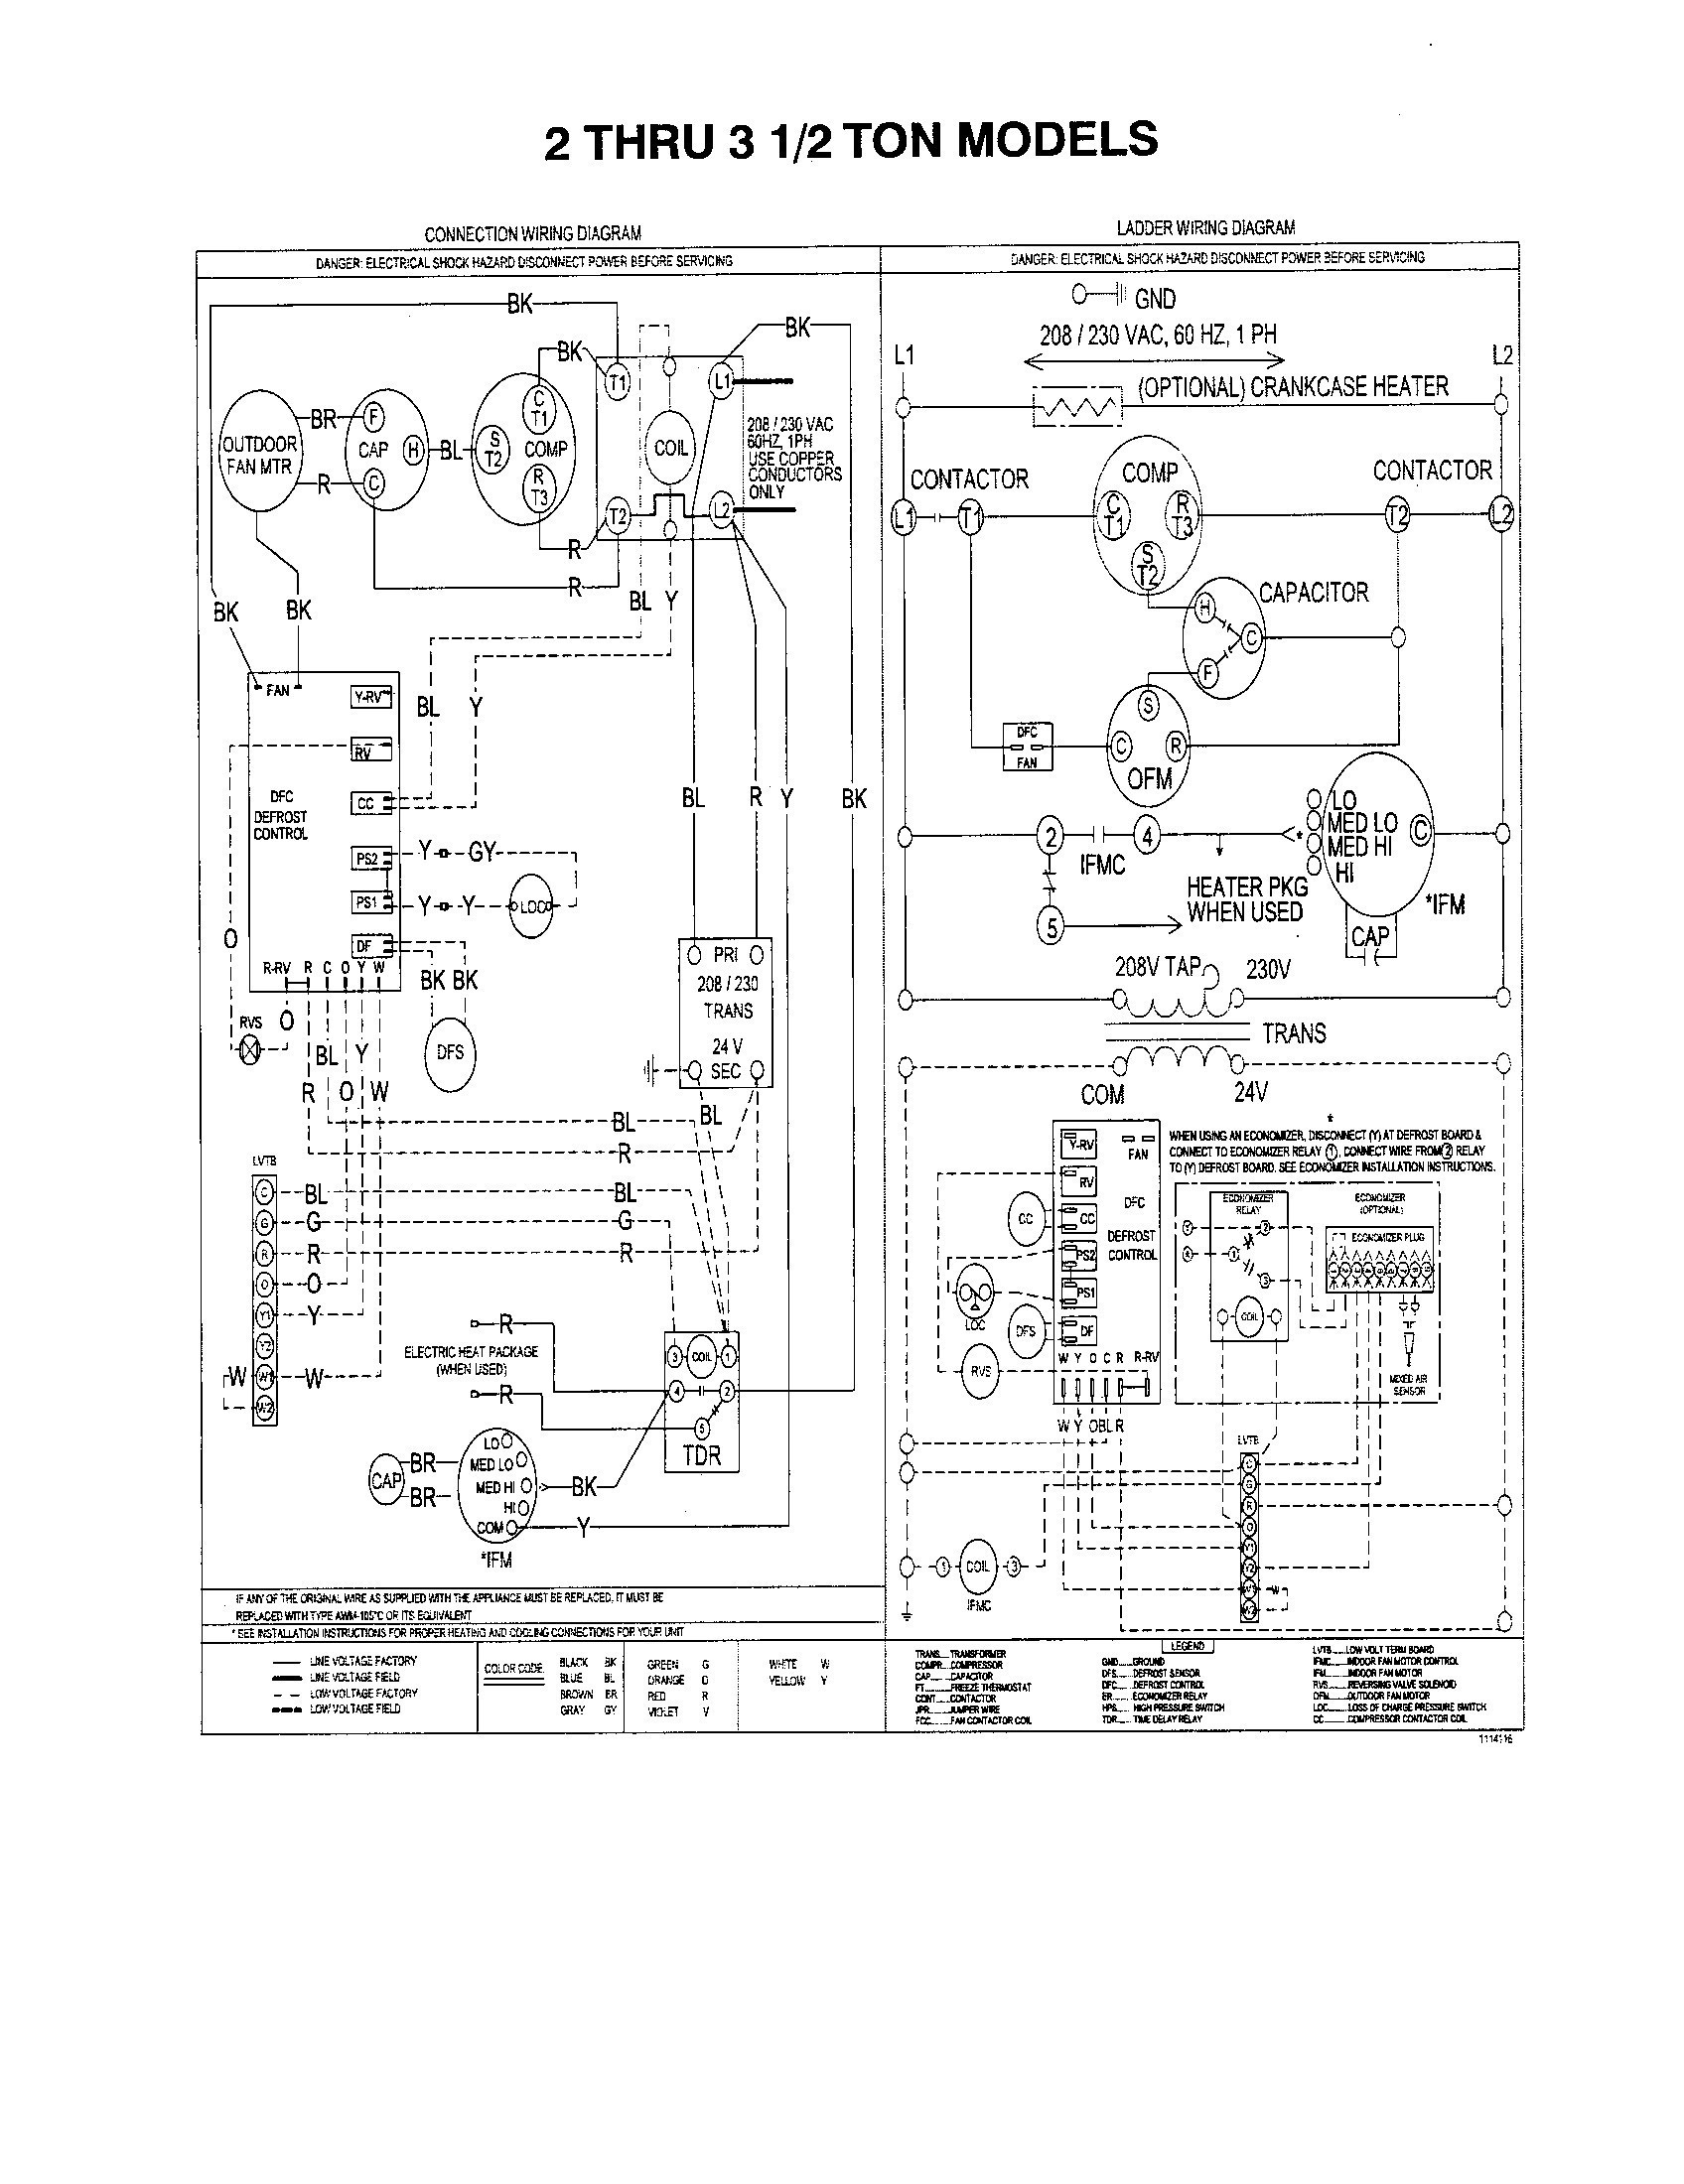 Wiring Diagram: 35 York Furnace Wiring Diagram